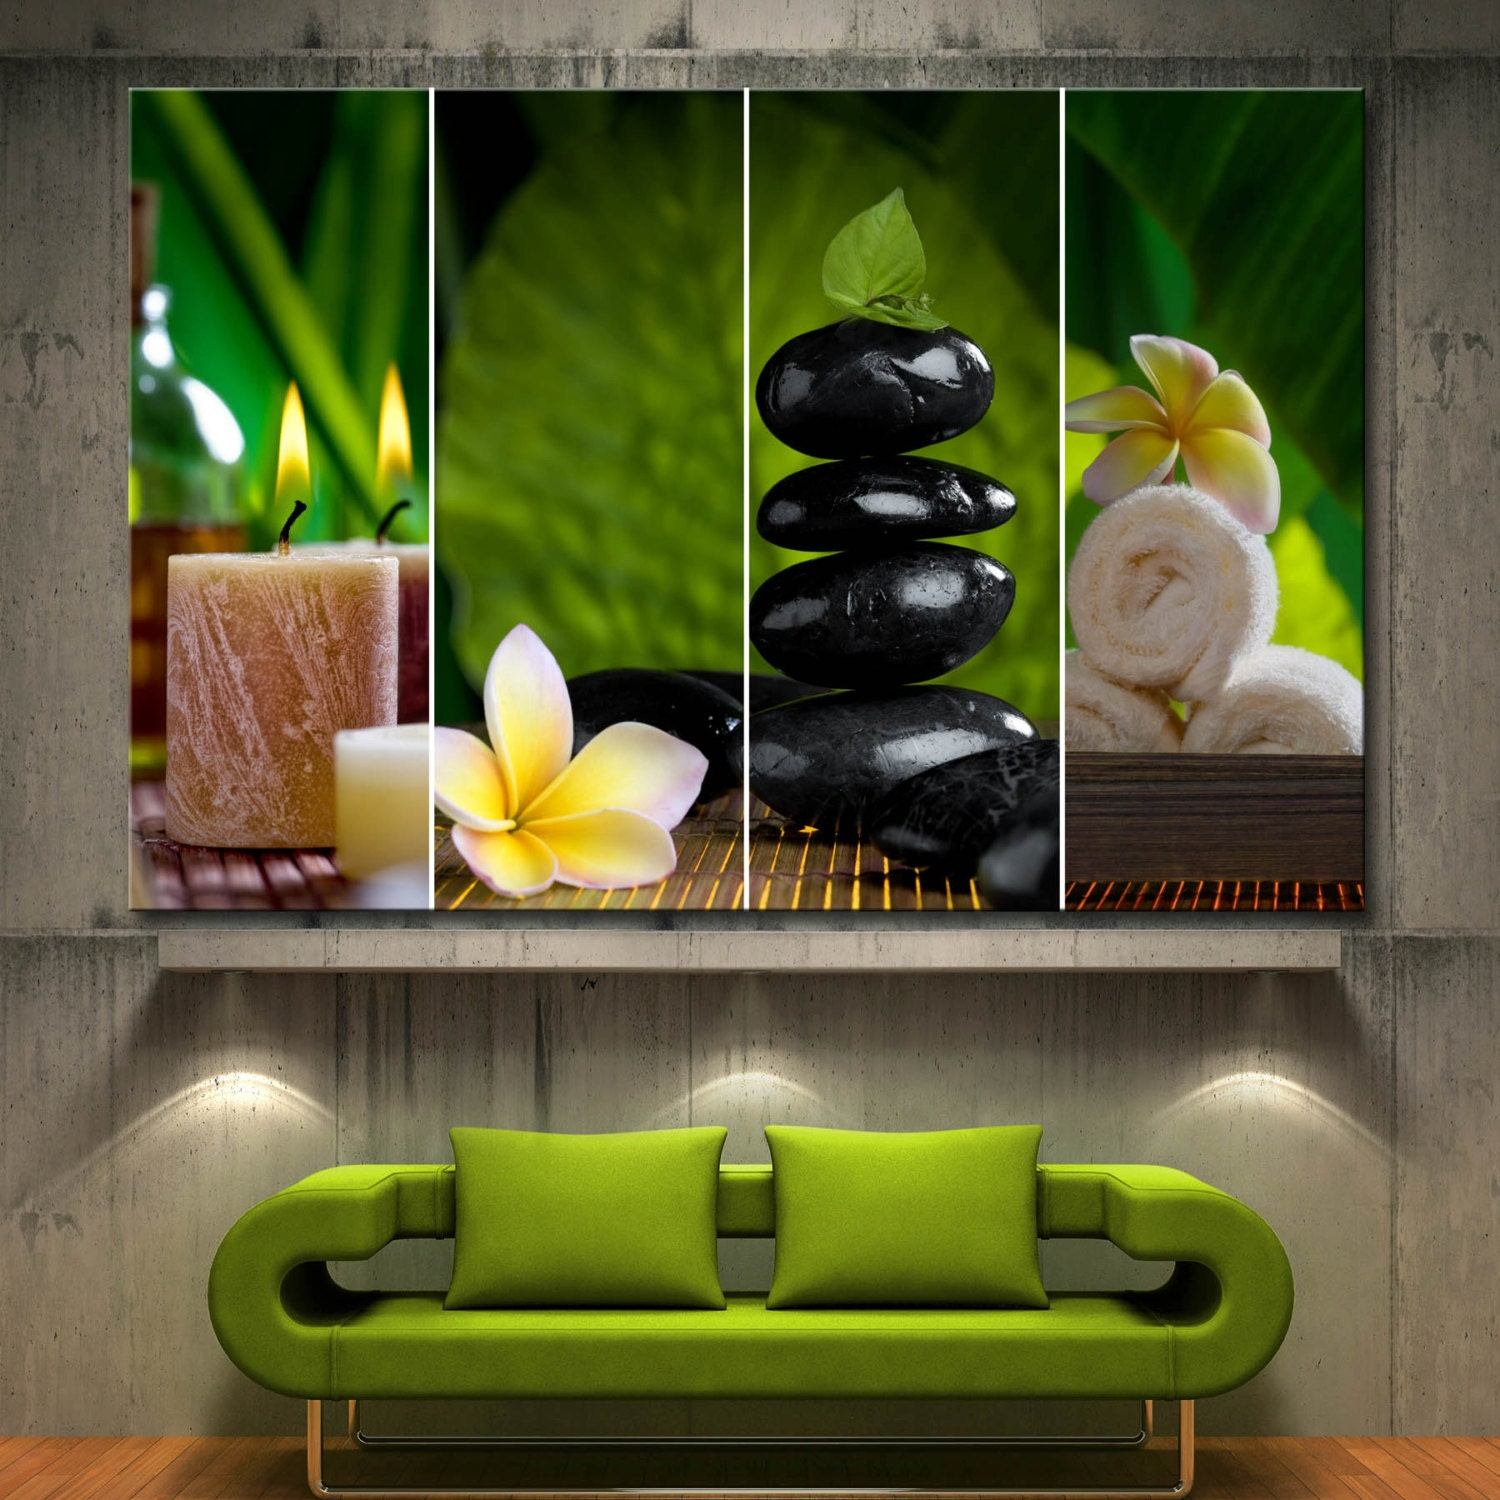 1 piece flowers candle zen spa collage decor wall art canvas. Black Bedroom Furniture Sets. Home Design Ideas